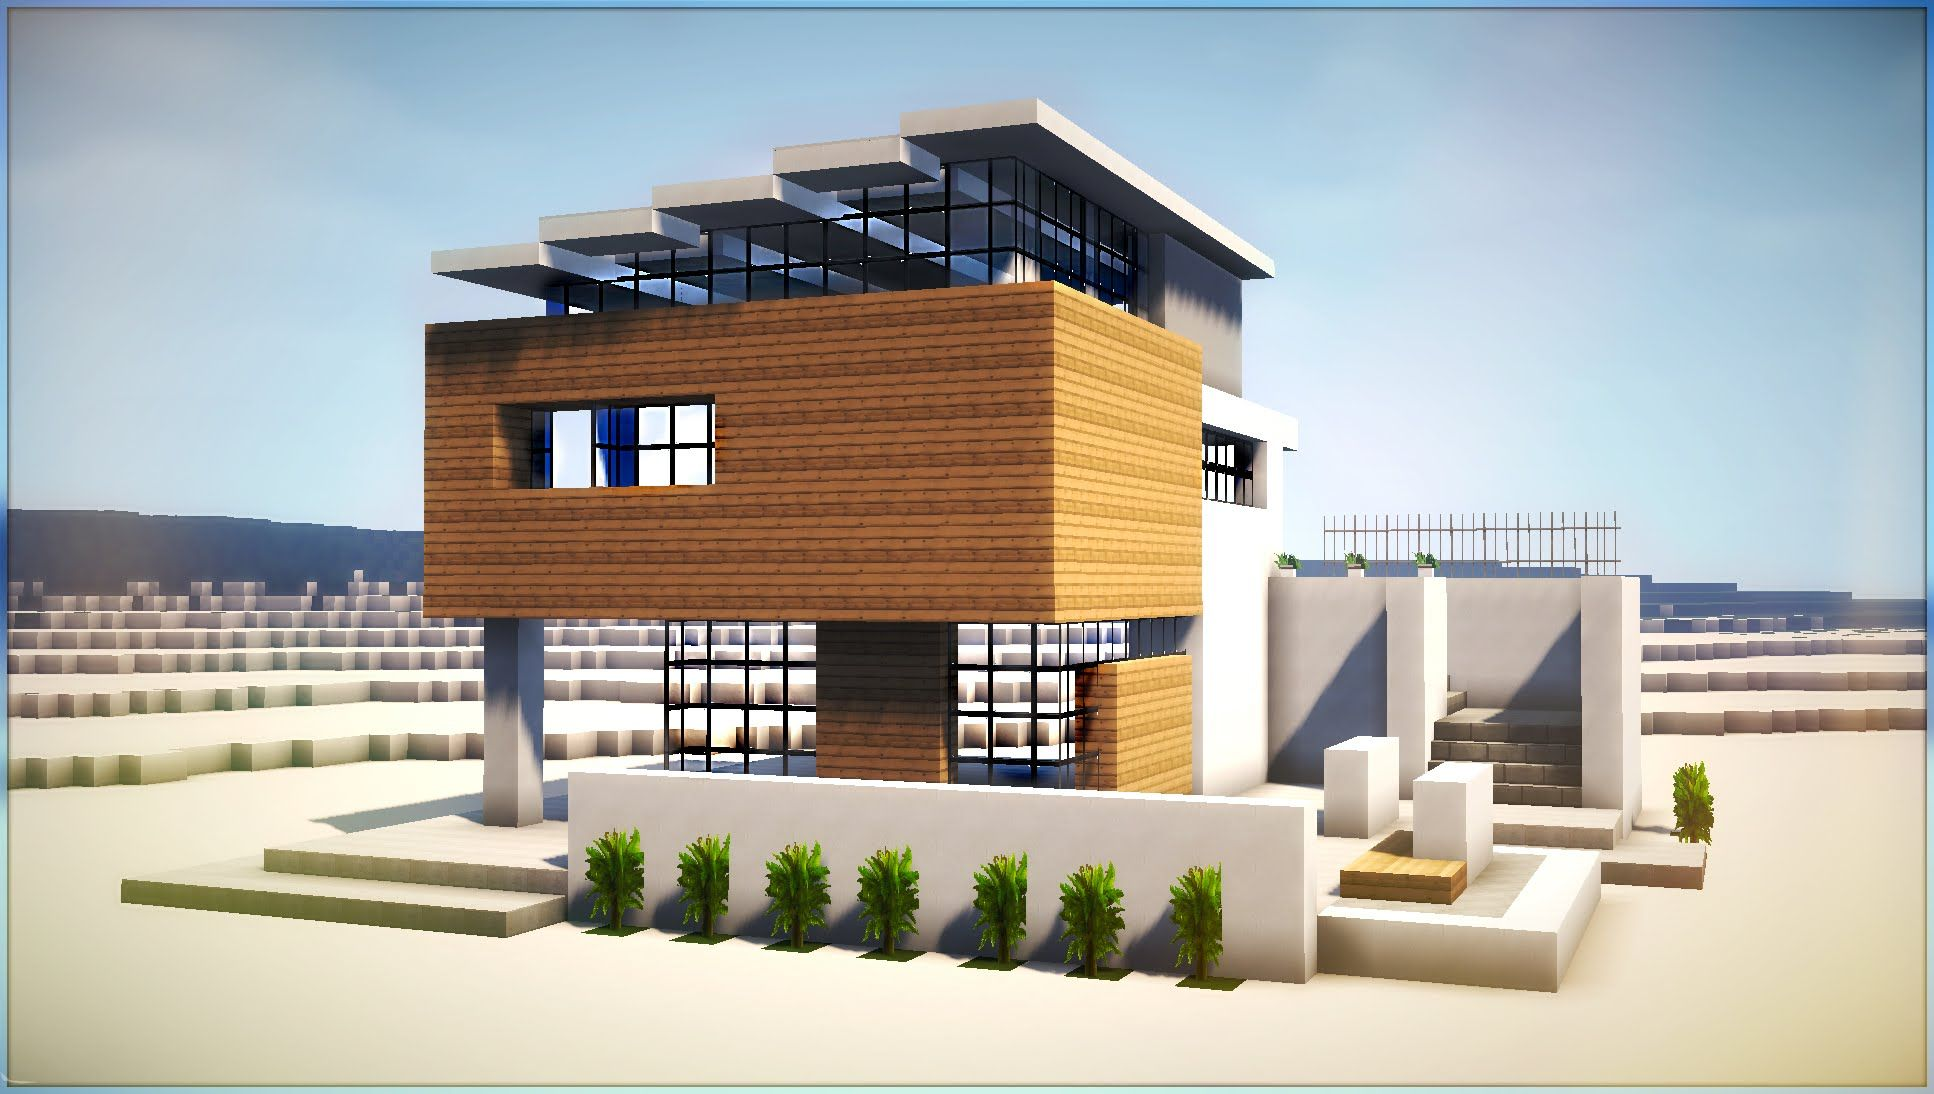 Beachhouse Minecraft Step By Step Pictures - Zion Star